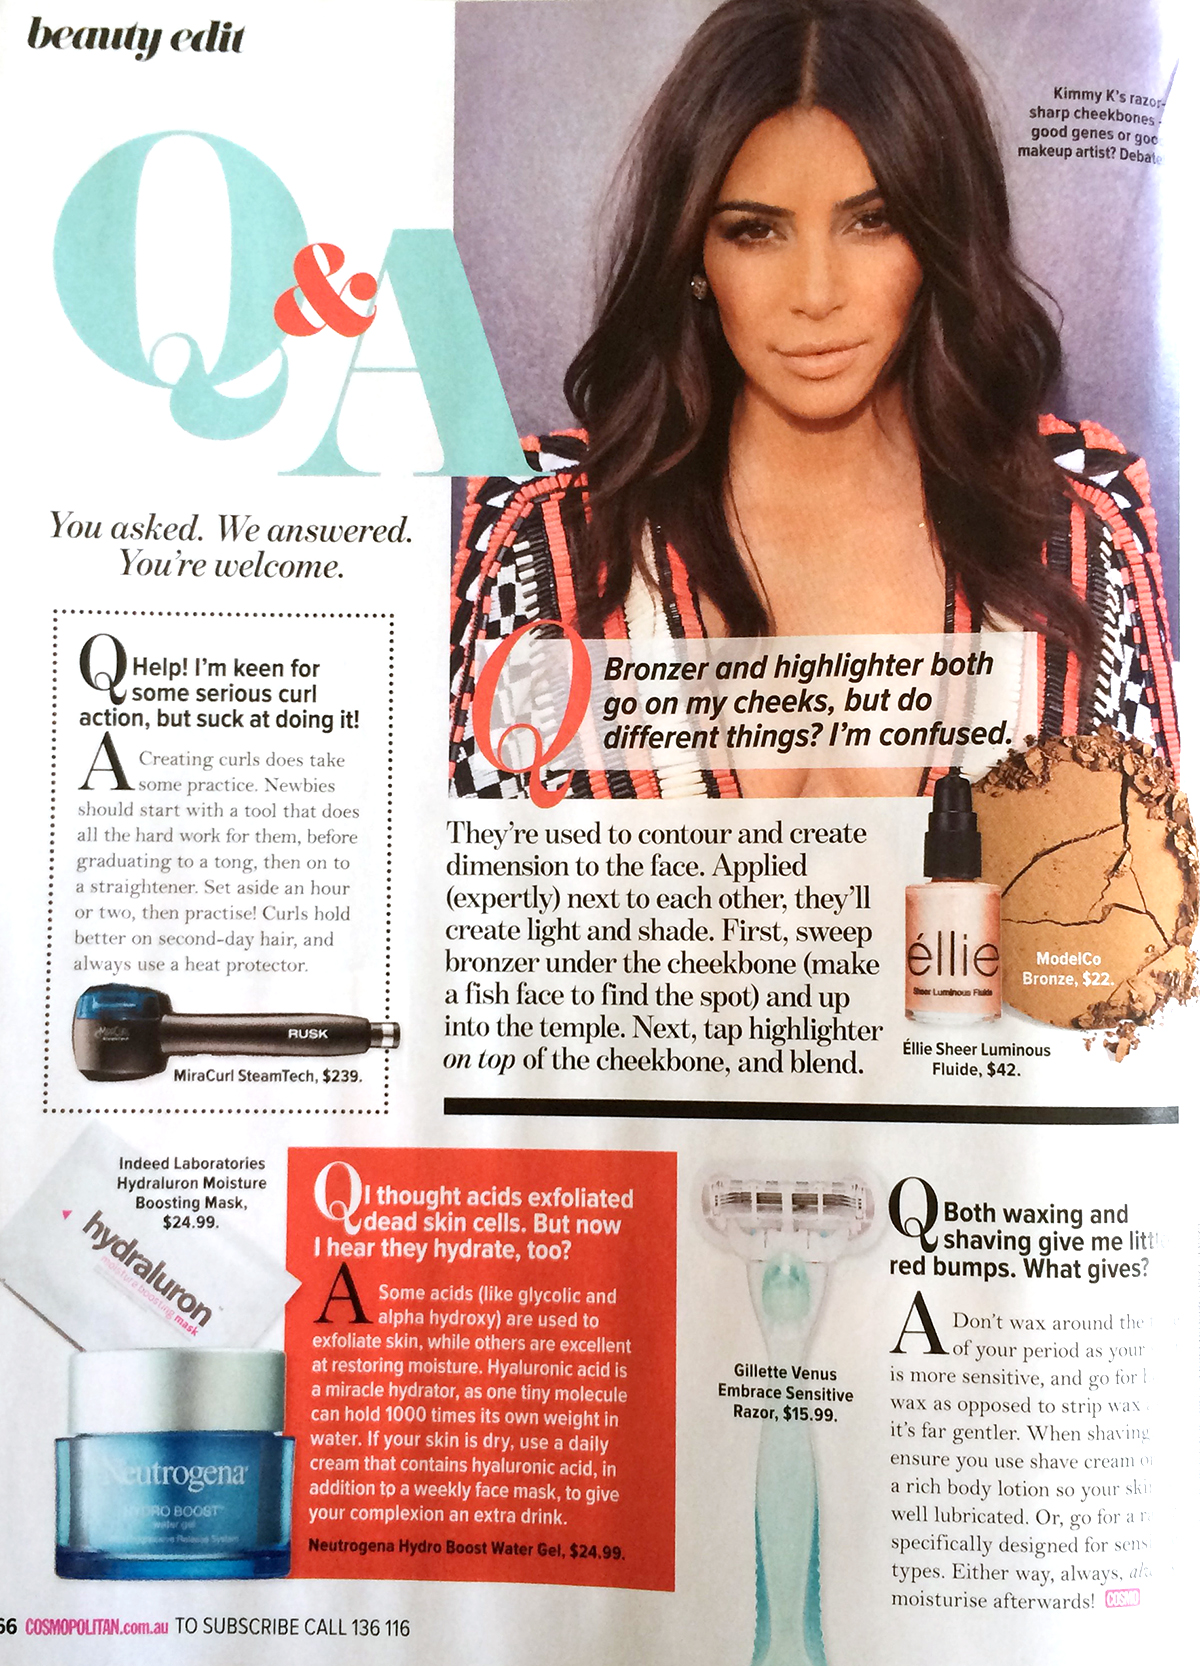 Here is the Sheer Luminous Fluide in Gleam featured in December's issue of Cosmopolitan! Kimmy K loves it too ;)